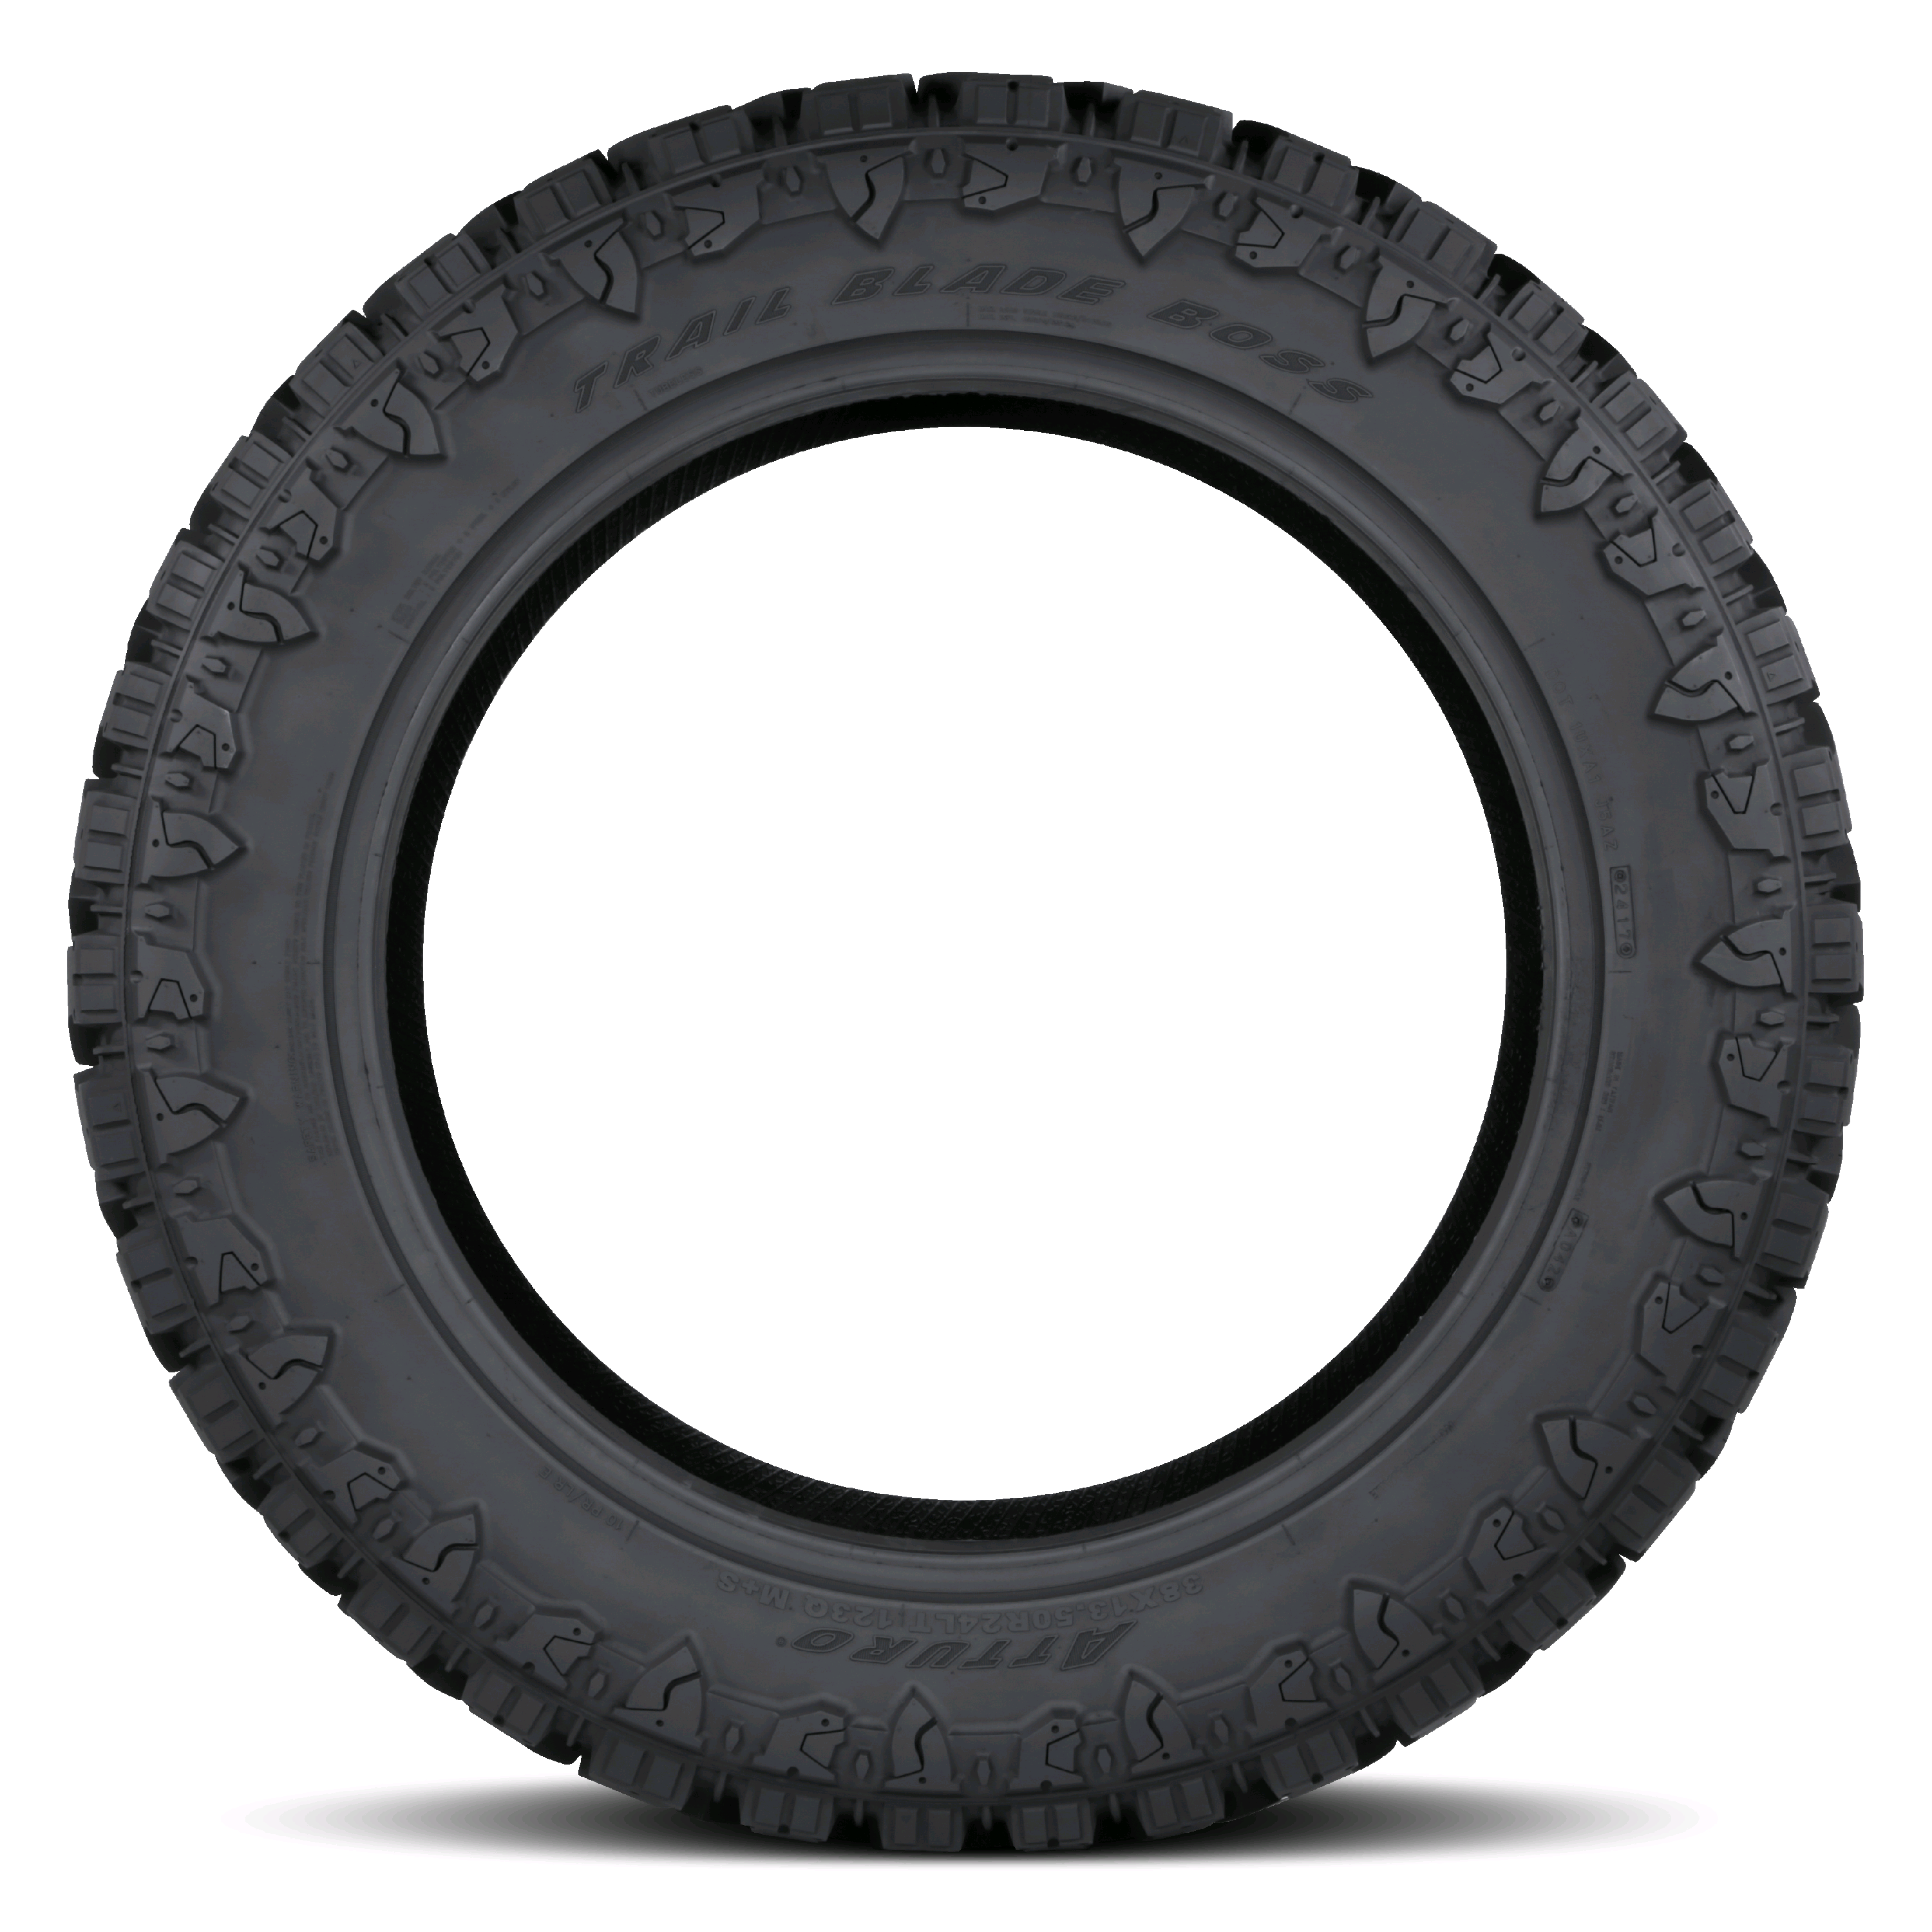 Atturo Trail Blade BOSS Extreme Off-Road Tire – 38X14.50R20 D 8ply